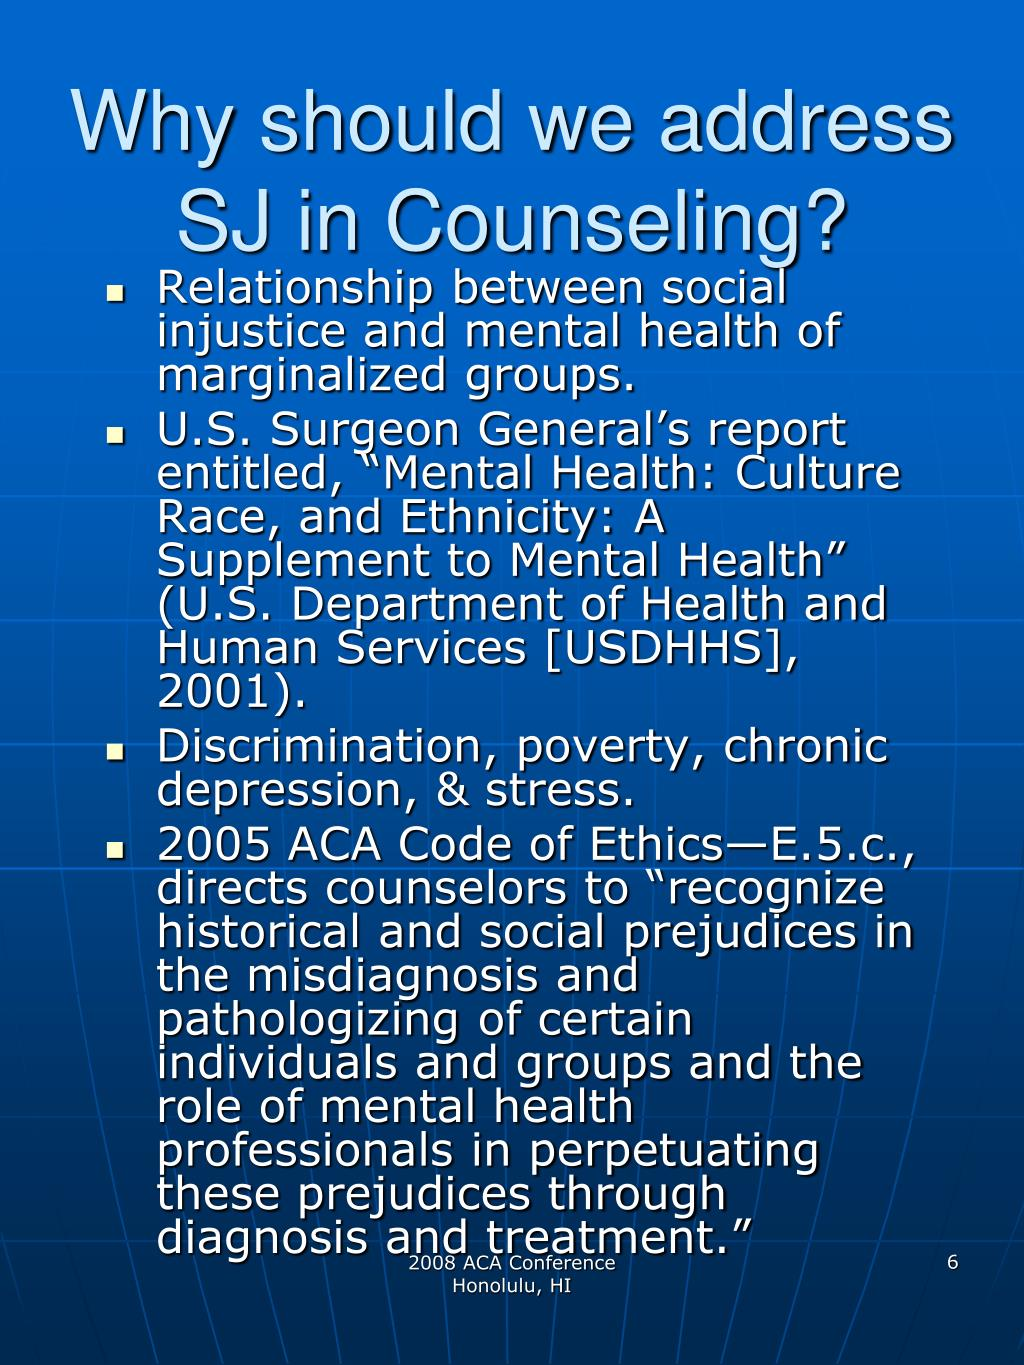 Why should we address SJ in Counseling?